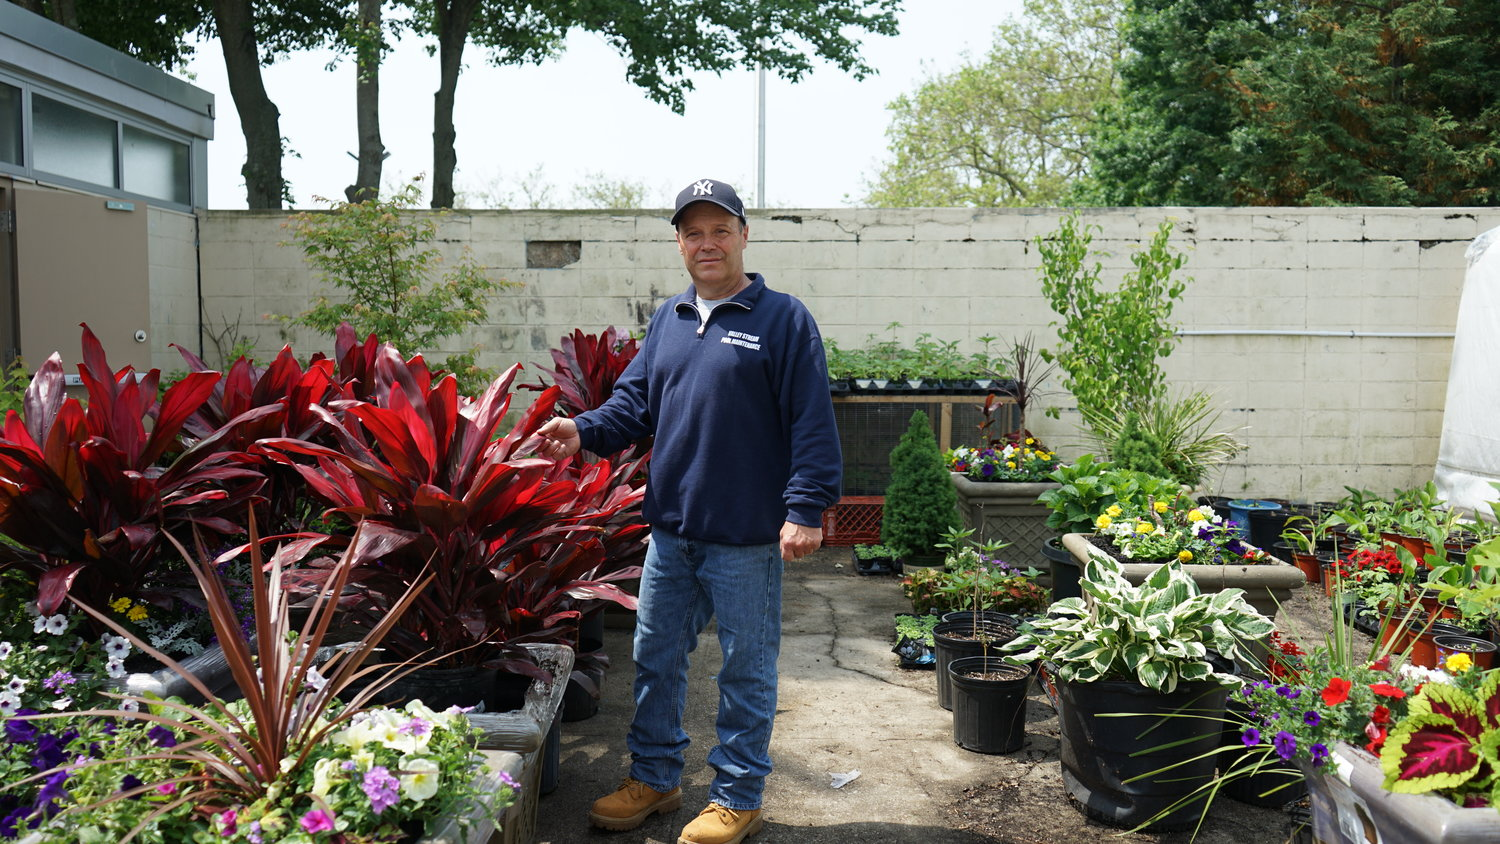 Village horticulturist Eugene Boening in his garden at the Hendrickson Park pool facility. His plant arrangements can be seen throughout Valley Stream.